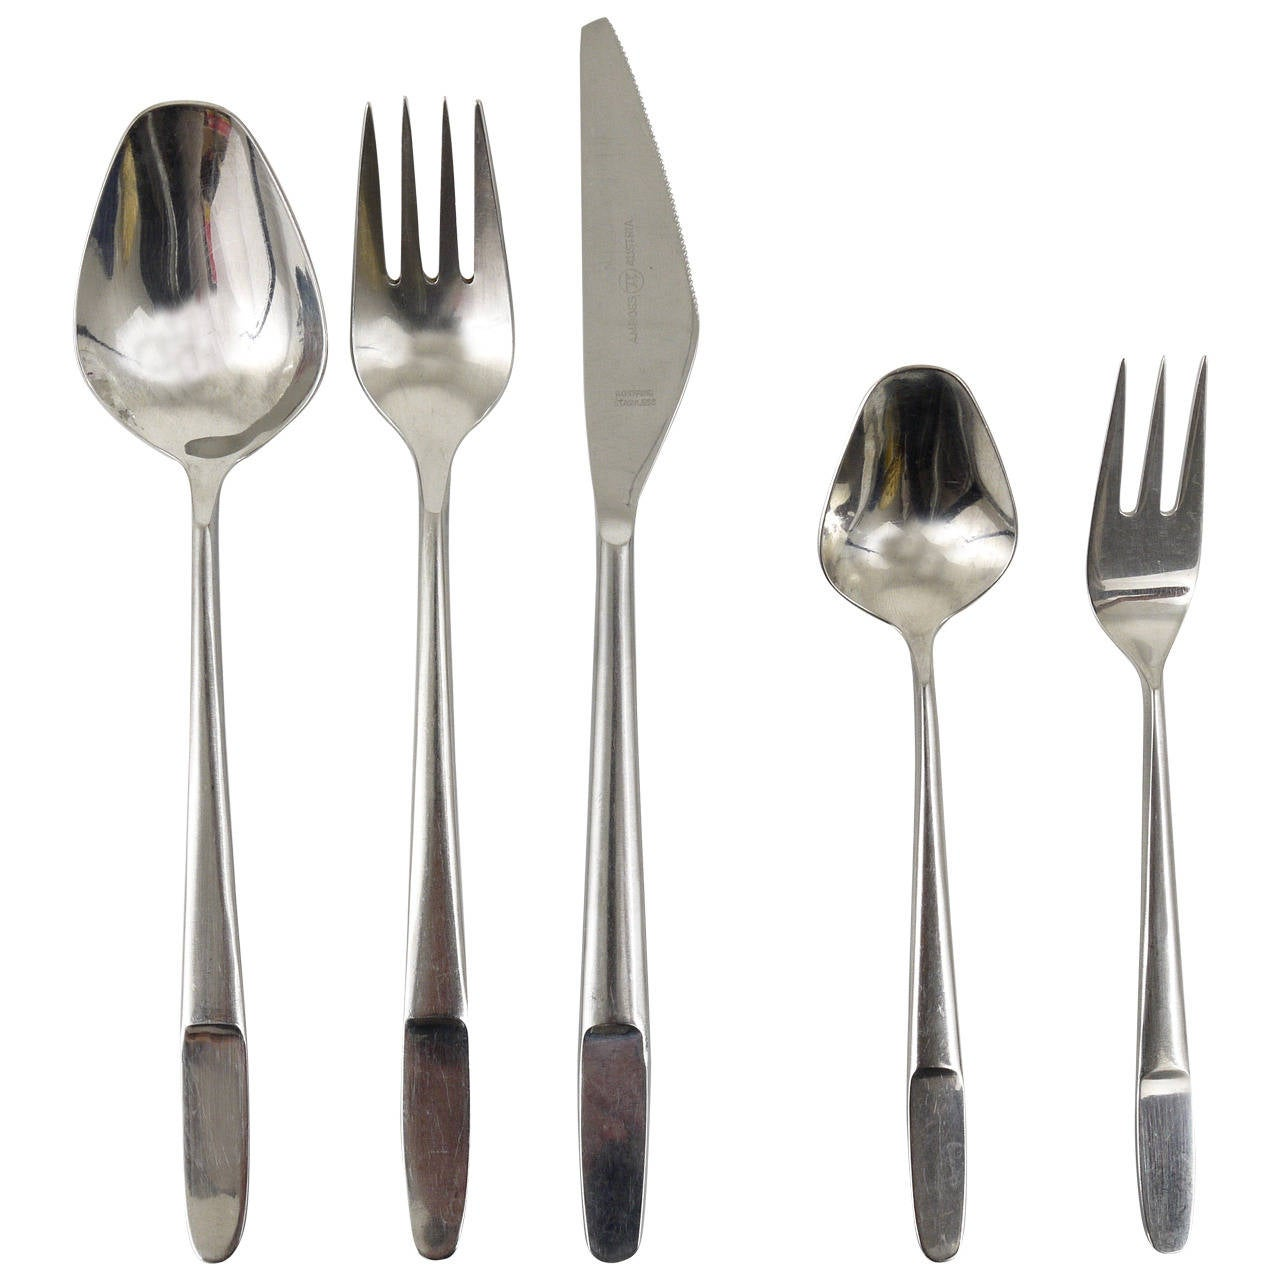 Amboss Austria 2070 Flatware Cutlery for 12 Persons by Helmut Alder, 1960s